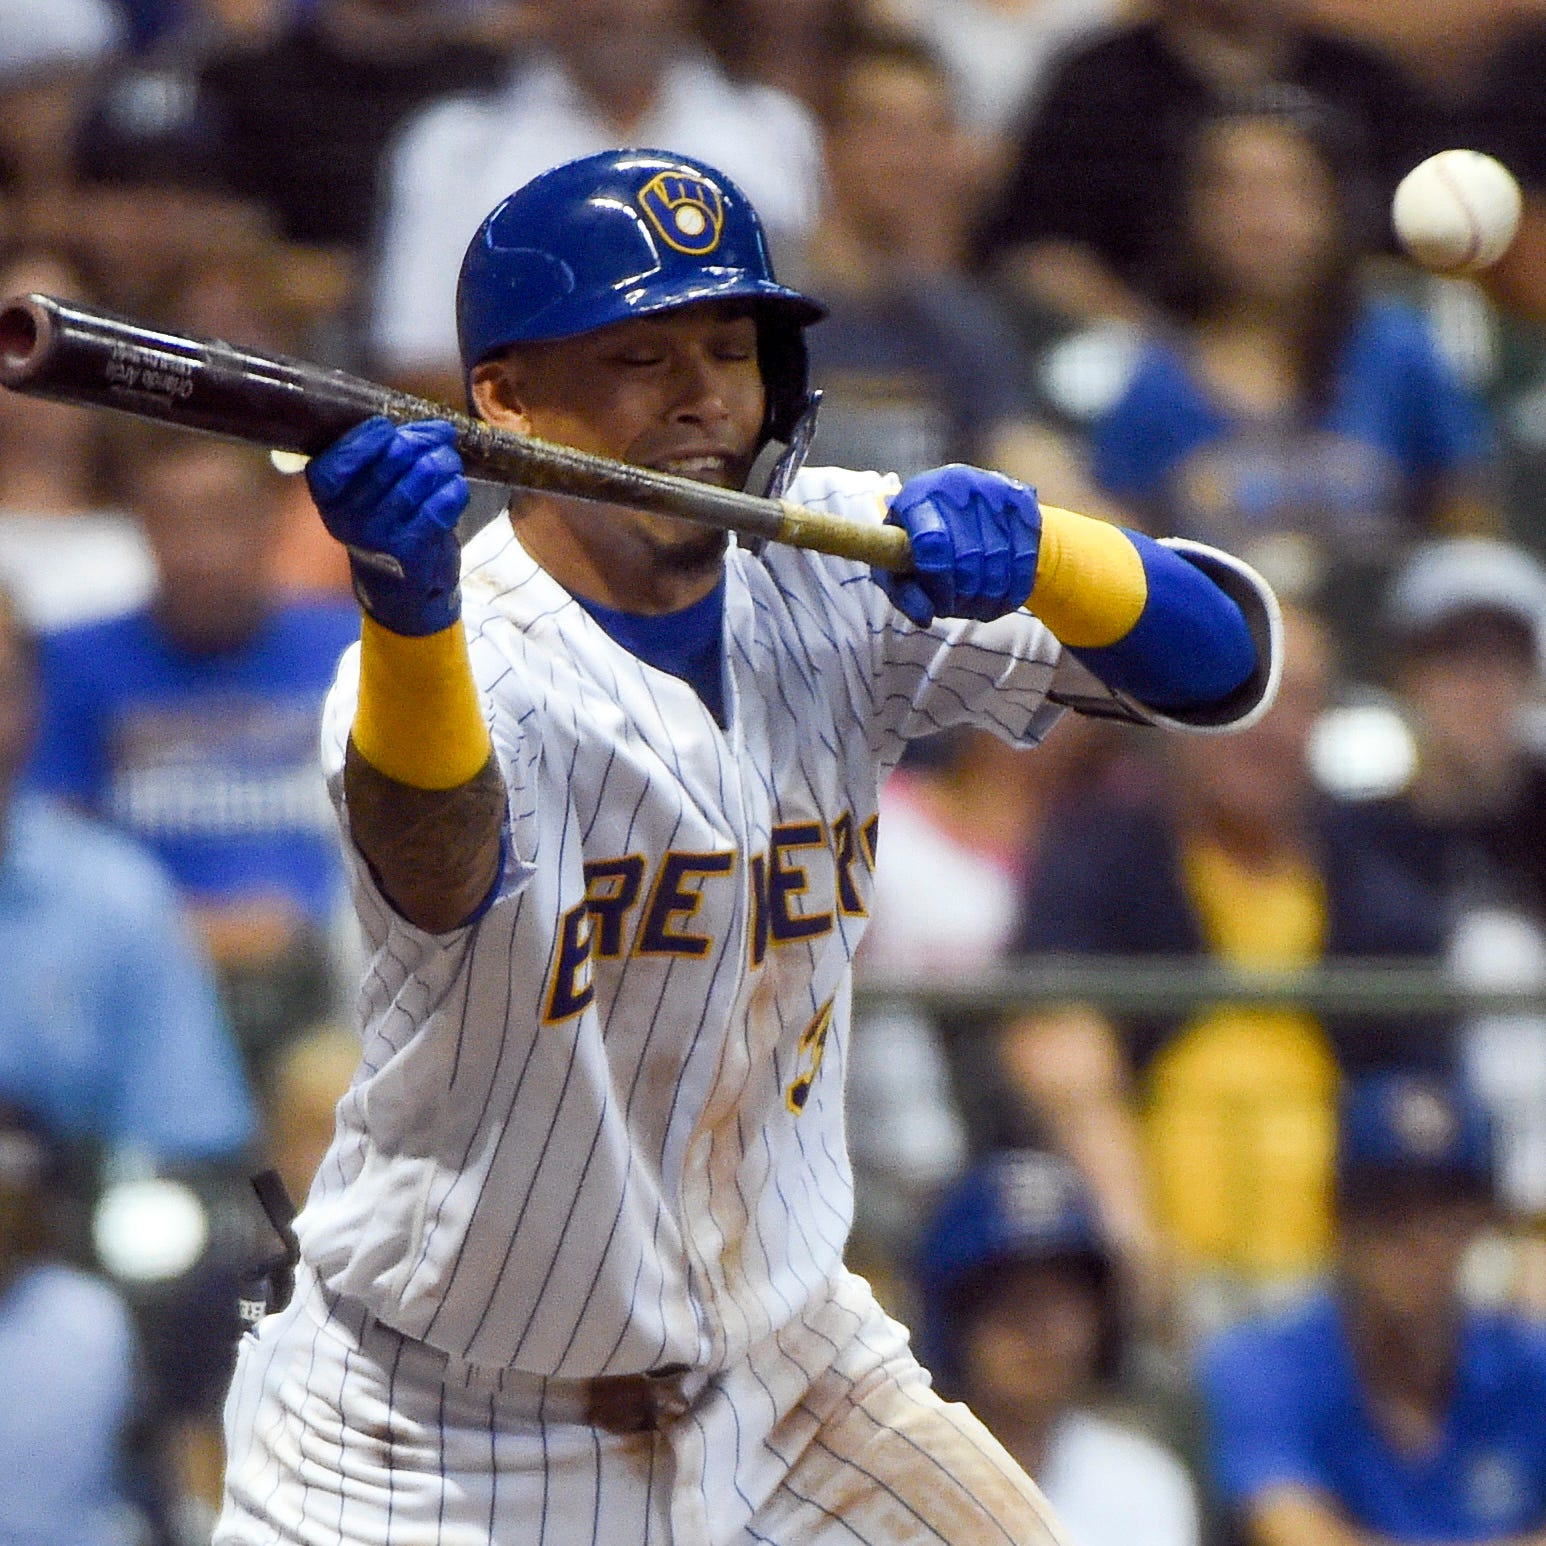 Orlando Arcia catches everyone off guard with a timely bunt